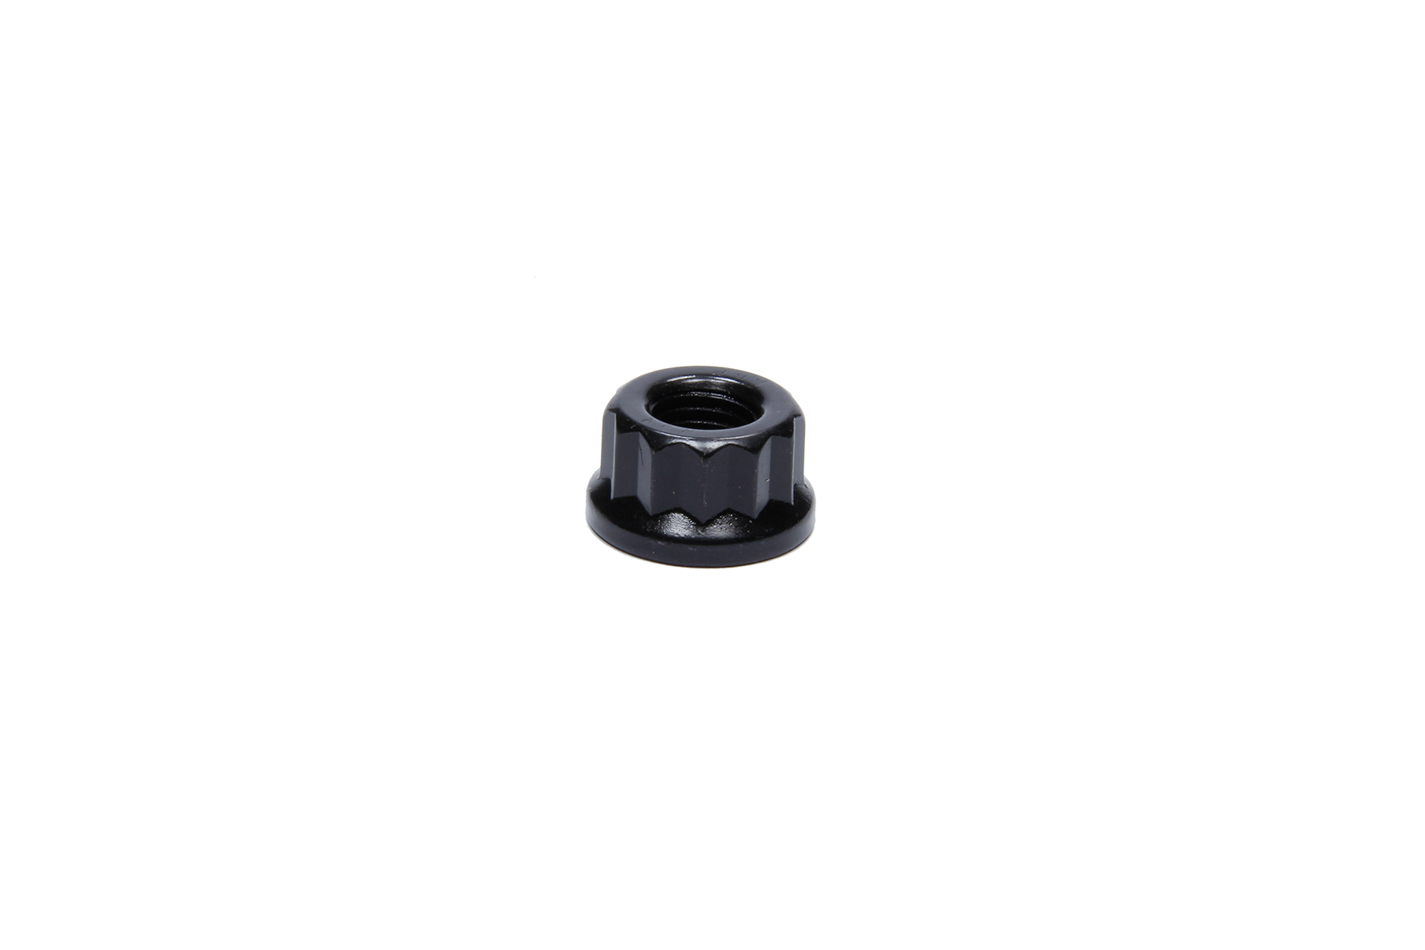 ARP 301-8312 Nut, 10 mm x 1.25 Thread, 16 mm 12 Point Head, Chromoly, Black Oxide, Universal, Each